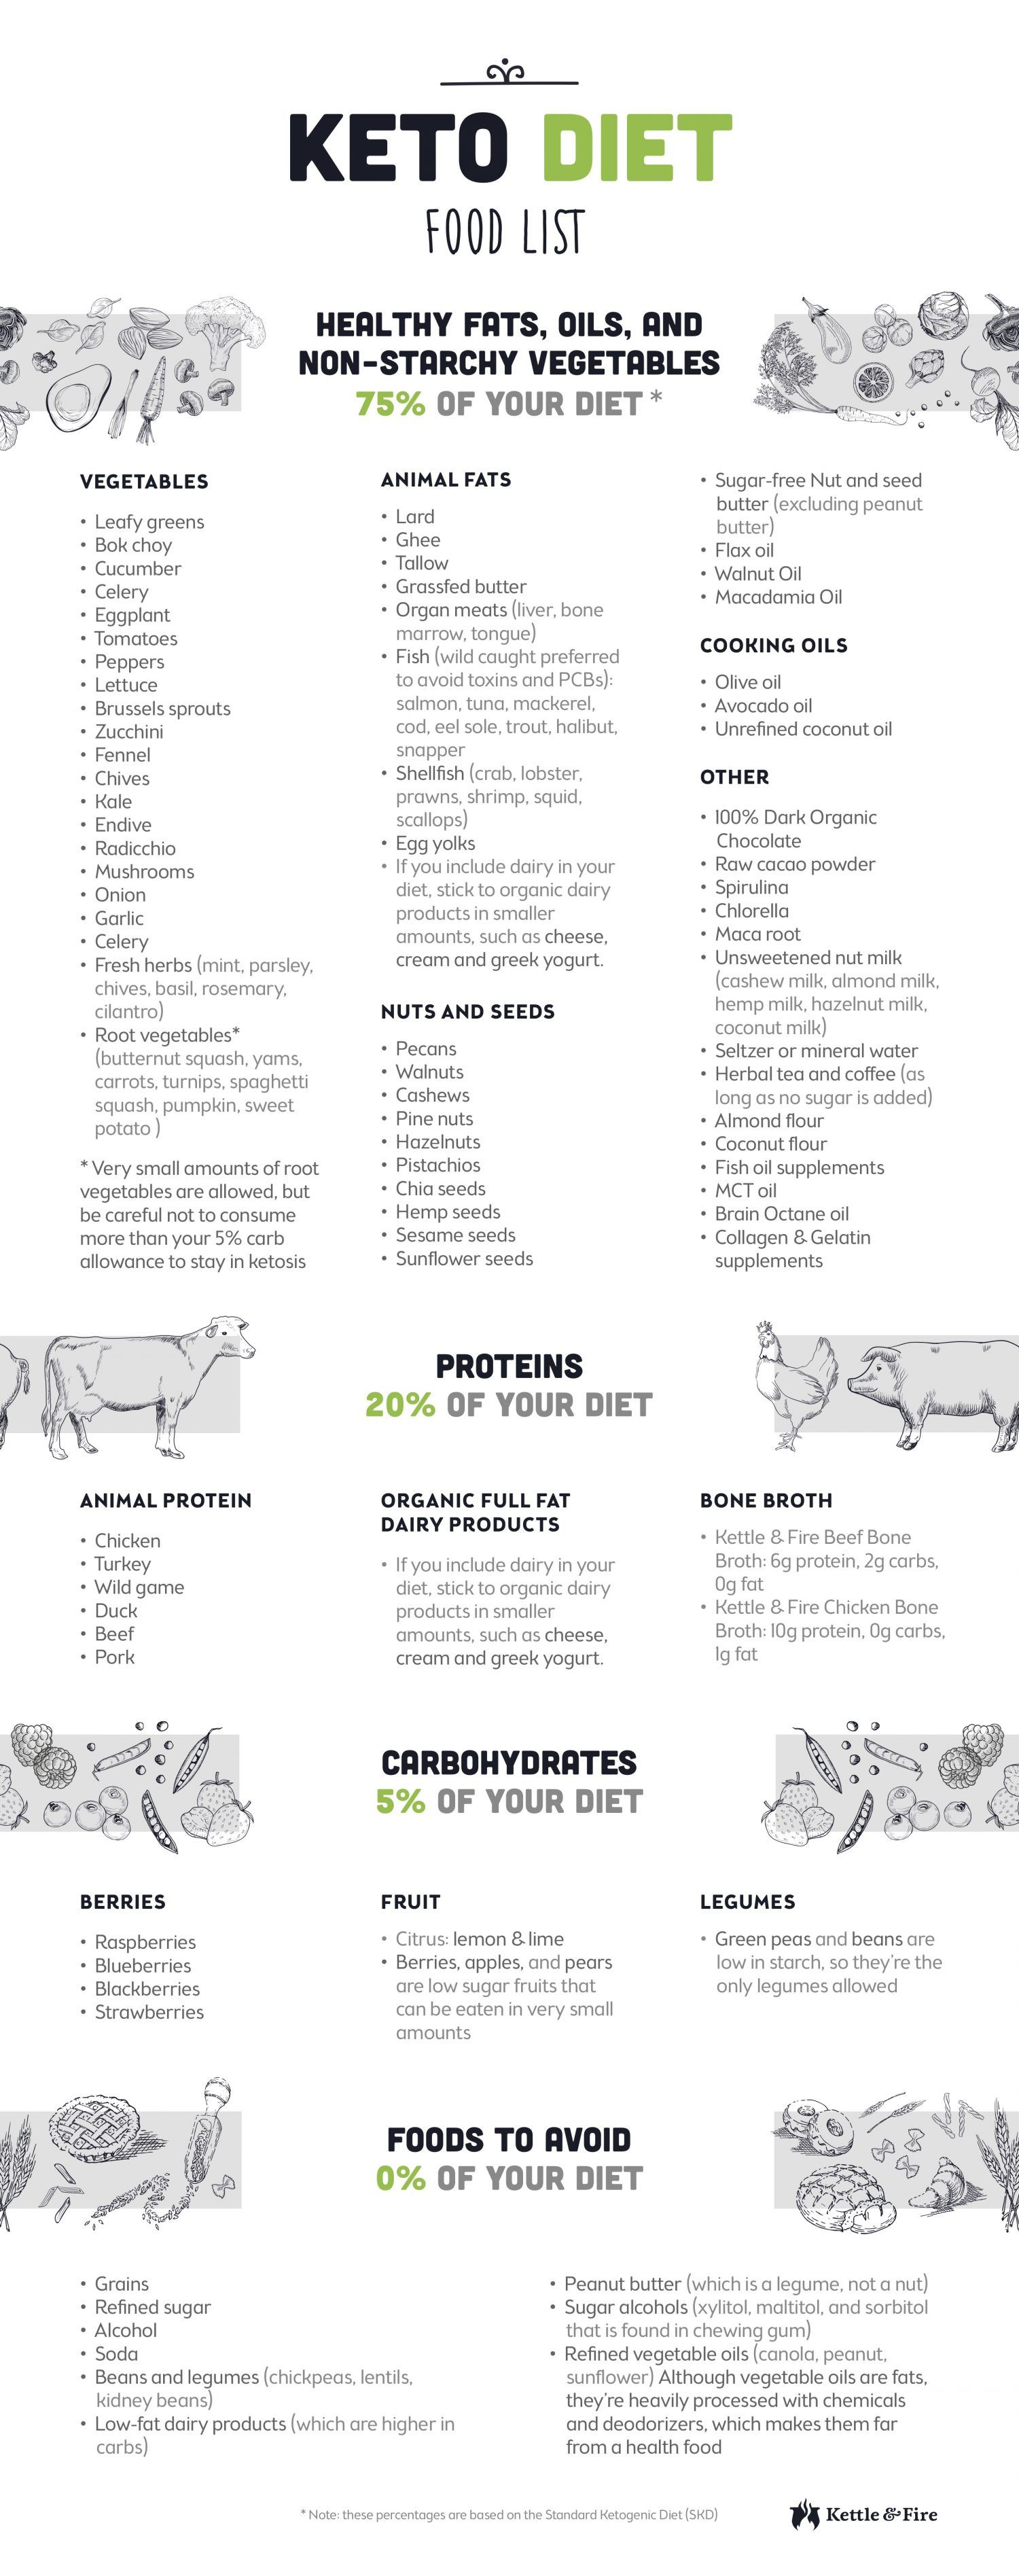 Keto Diet Food List for Ultimate Fat Burning - Perfect Keto Blog | Ketogenic Diet | Keto, Keto ...